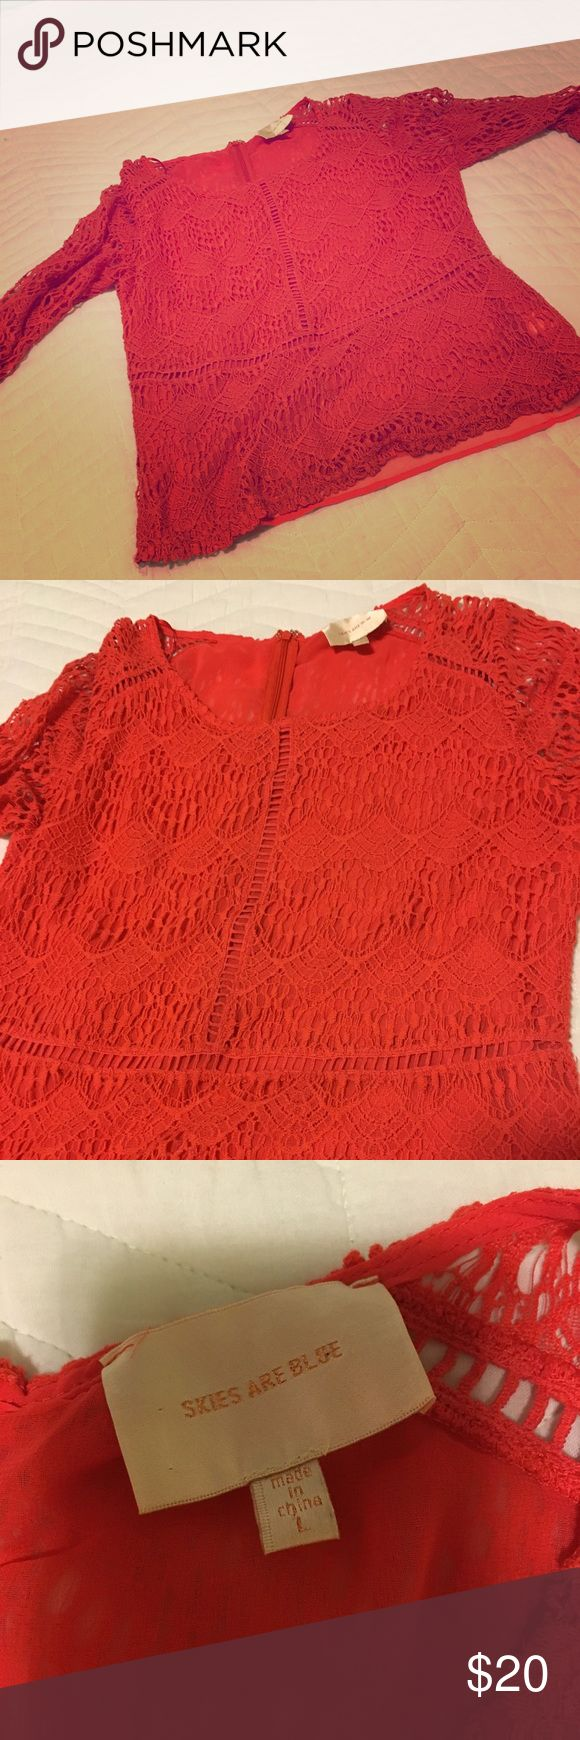 Coral Lace 3/4 sleeve shirt - Worn 2x - L Super cute lace coral shirt. Looks great wth jeans! Has a built in tank top liner. Size large. Got it in a stitch fix box for $58. Loved it but too big :( Tops Blouses